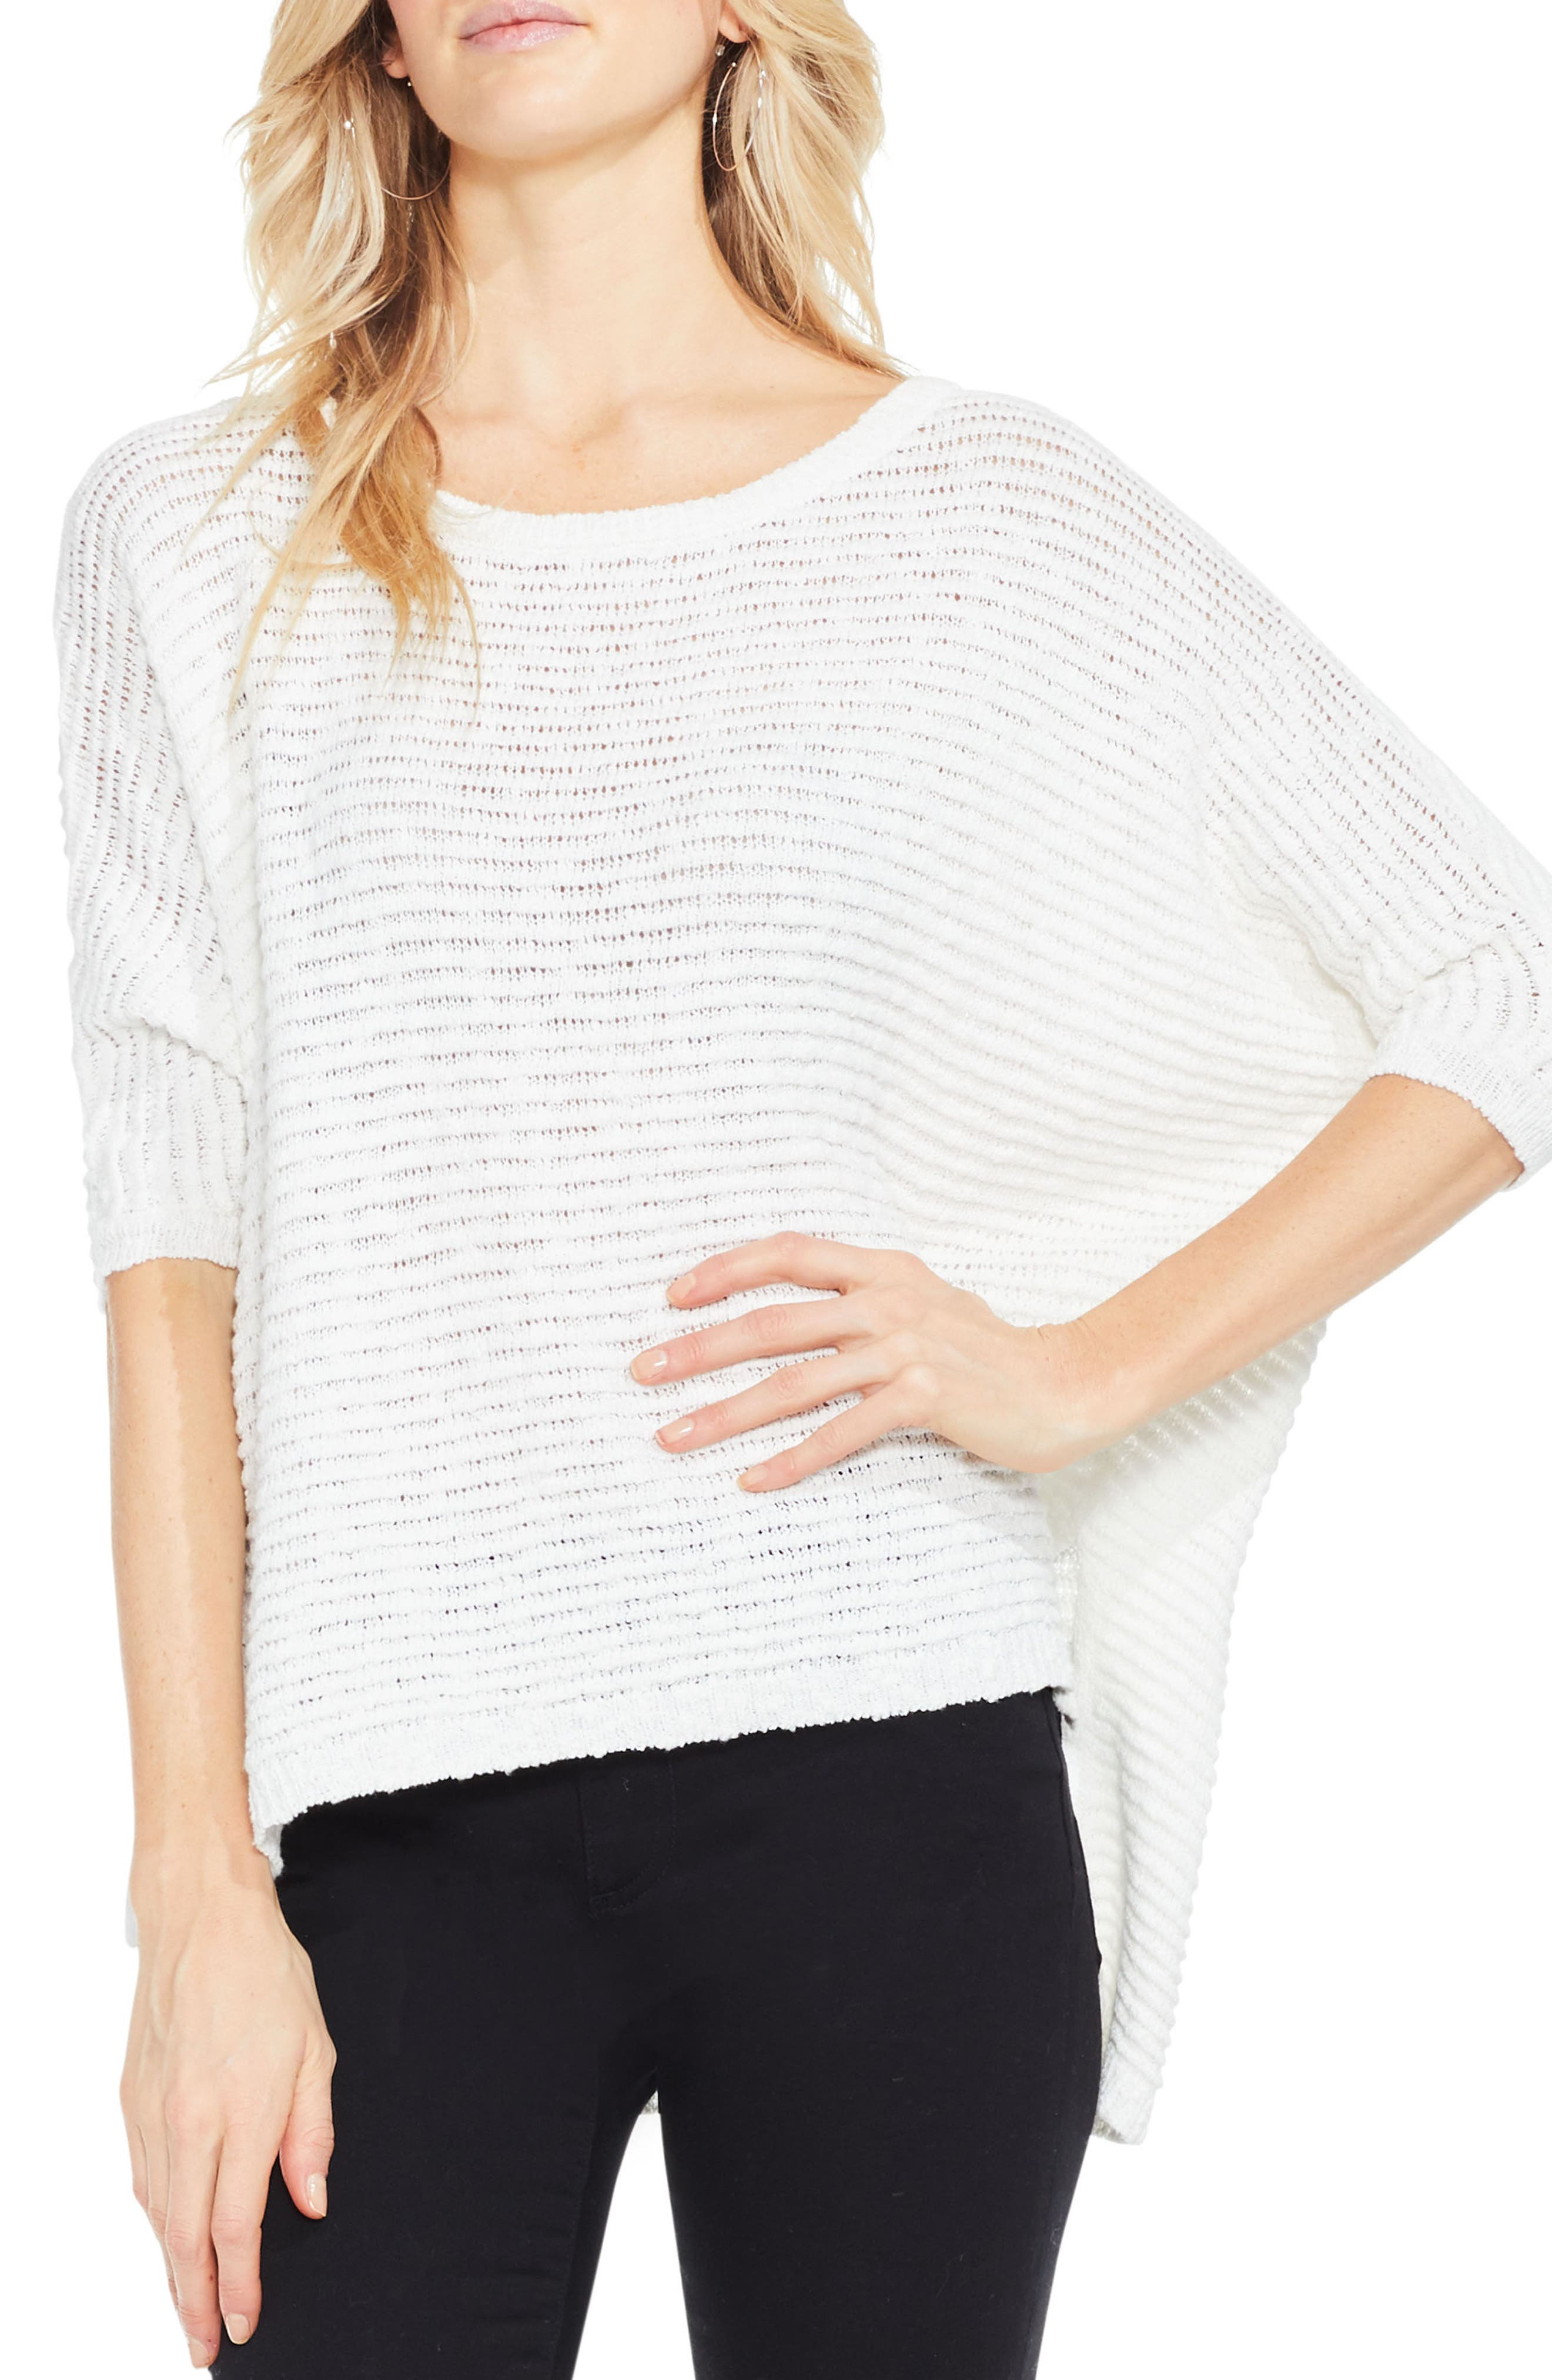 Alternate Image 1 Selected - Two by Vince Camuto Crinkle Yarn Dolman Sleeve Top